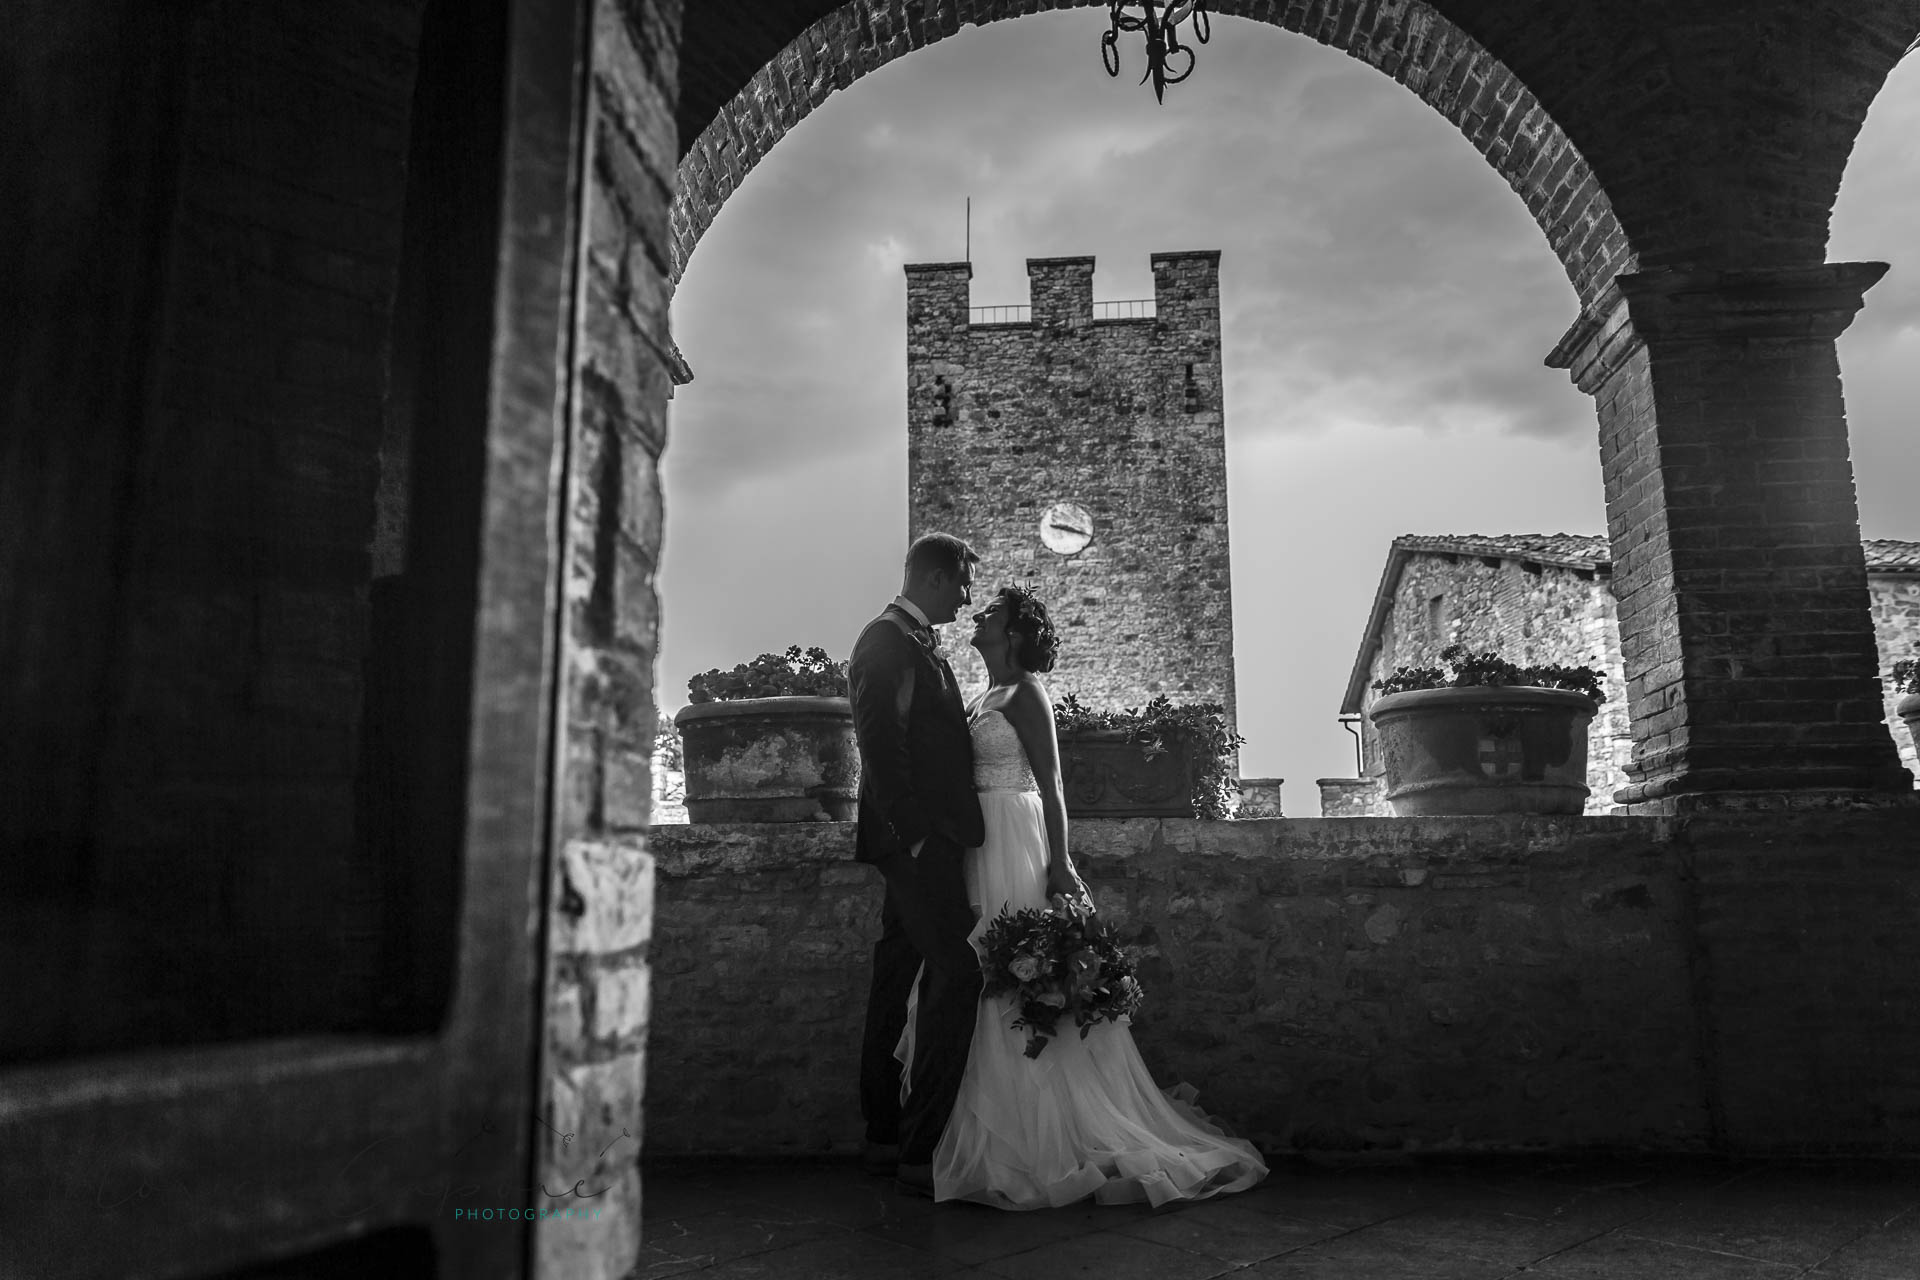 modanella-castle-wedding-photographer-italy